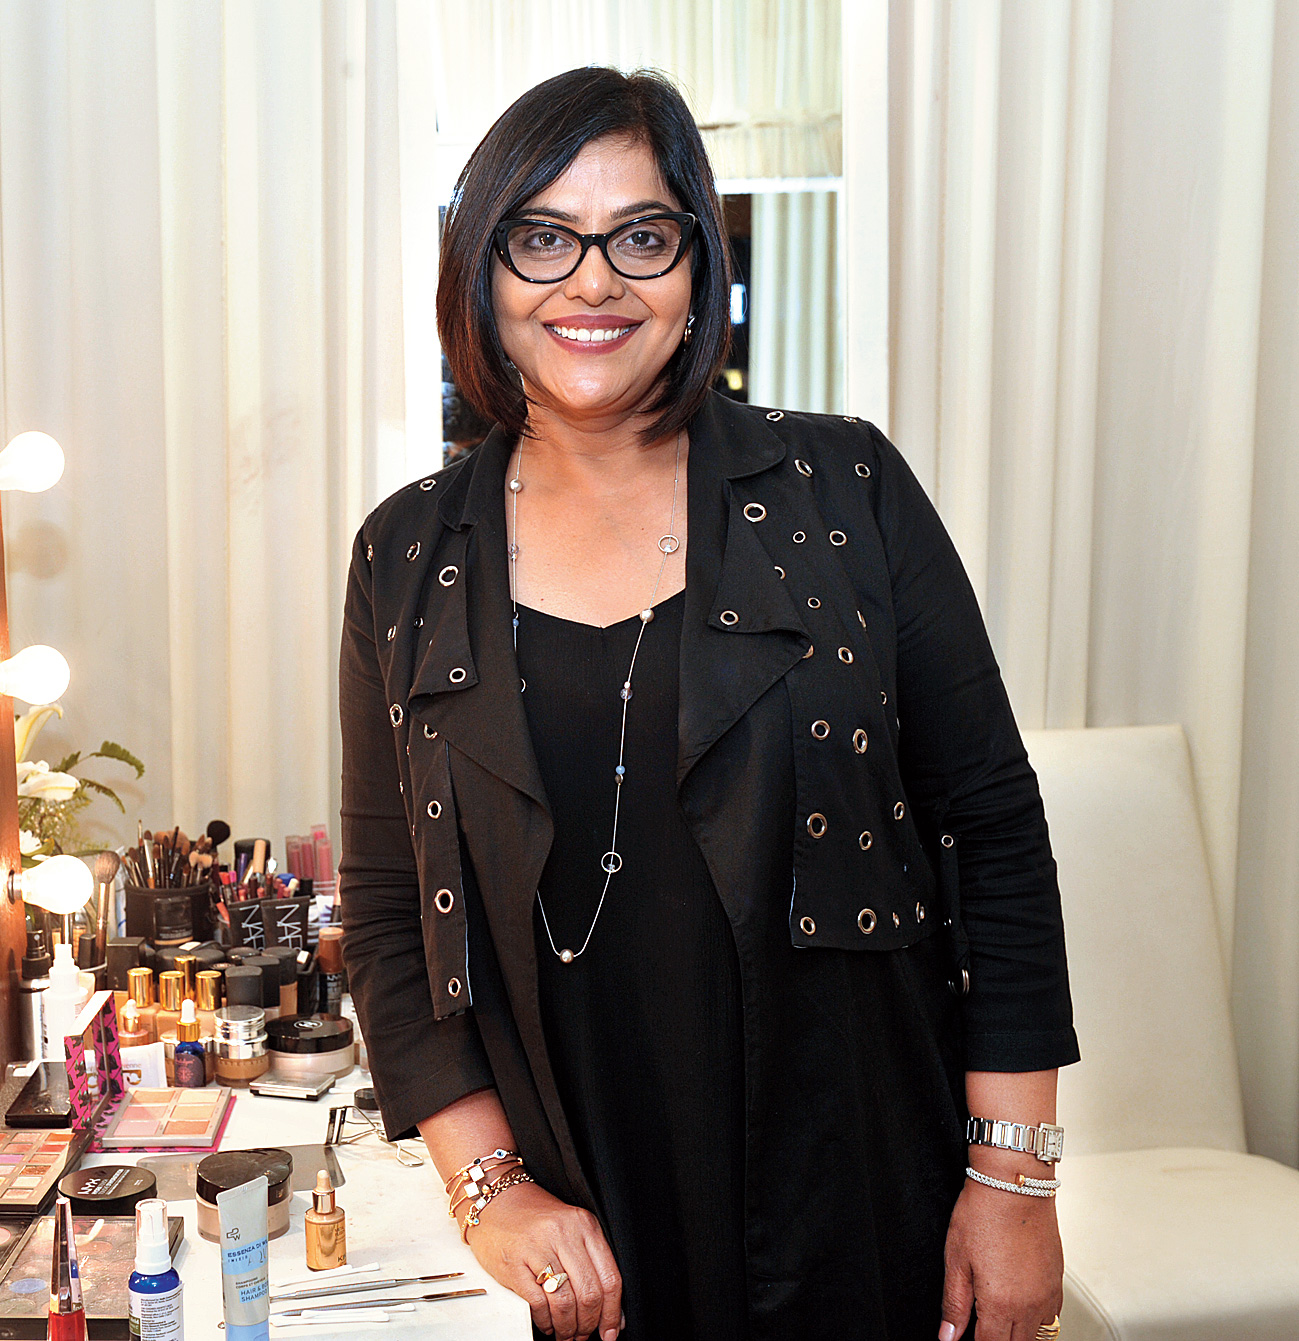 """Beauty pro Anu Kaushik had a few tips for the bride. """"The Indian bride wears so much jewellery and with so much happening in the outfit, you should keep the make-up minimal. Work on your skin and feel beautiful,"""" she said. Those who dropped by her corner were """"happy keeping it minimal"""". """"I told them about the right foundation and eye make-up, about the importance of well-groomed eyebrows or just how kajal can make a difference, or just concealing the under eyes,"""" she said."""